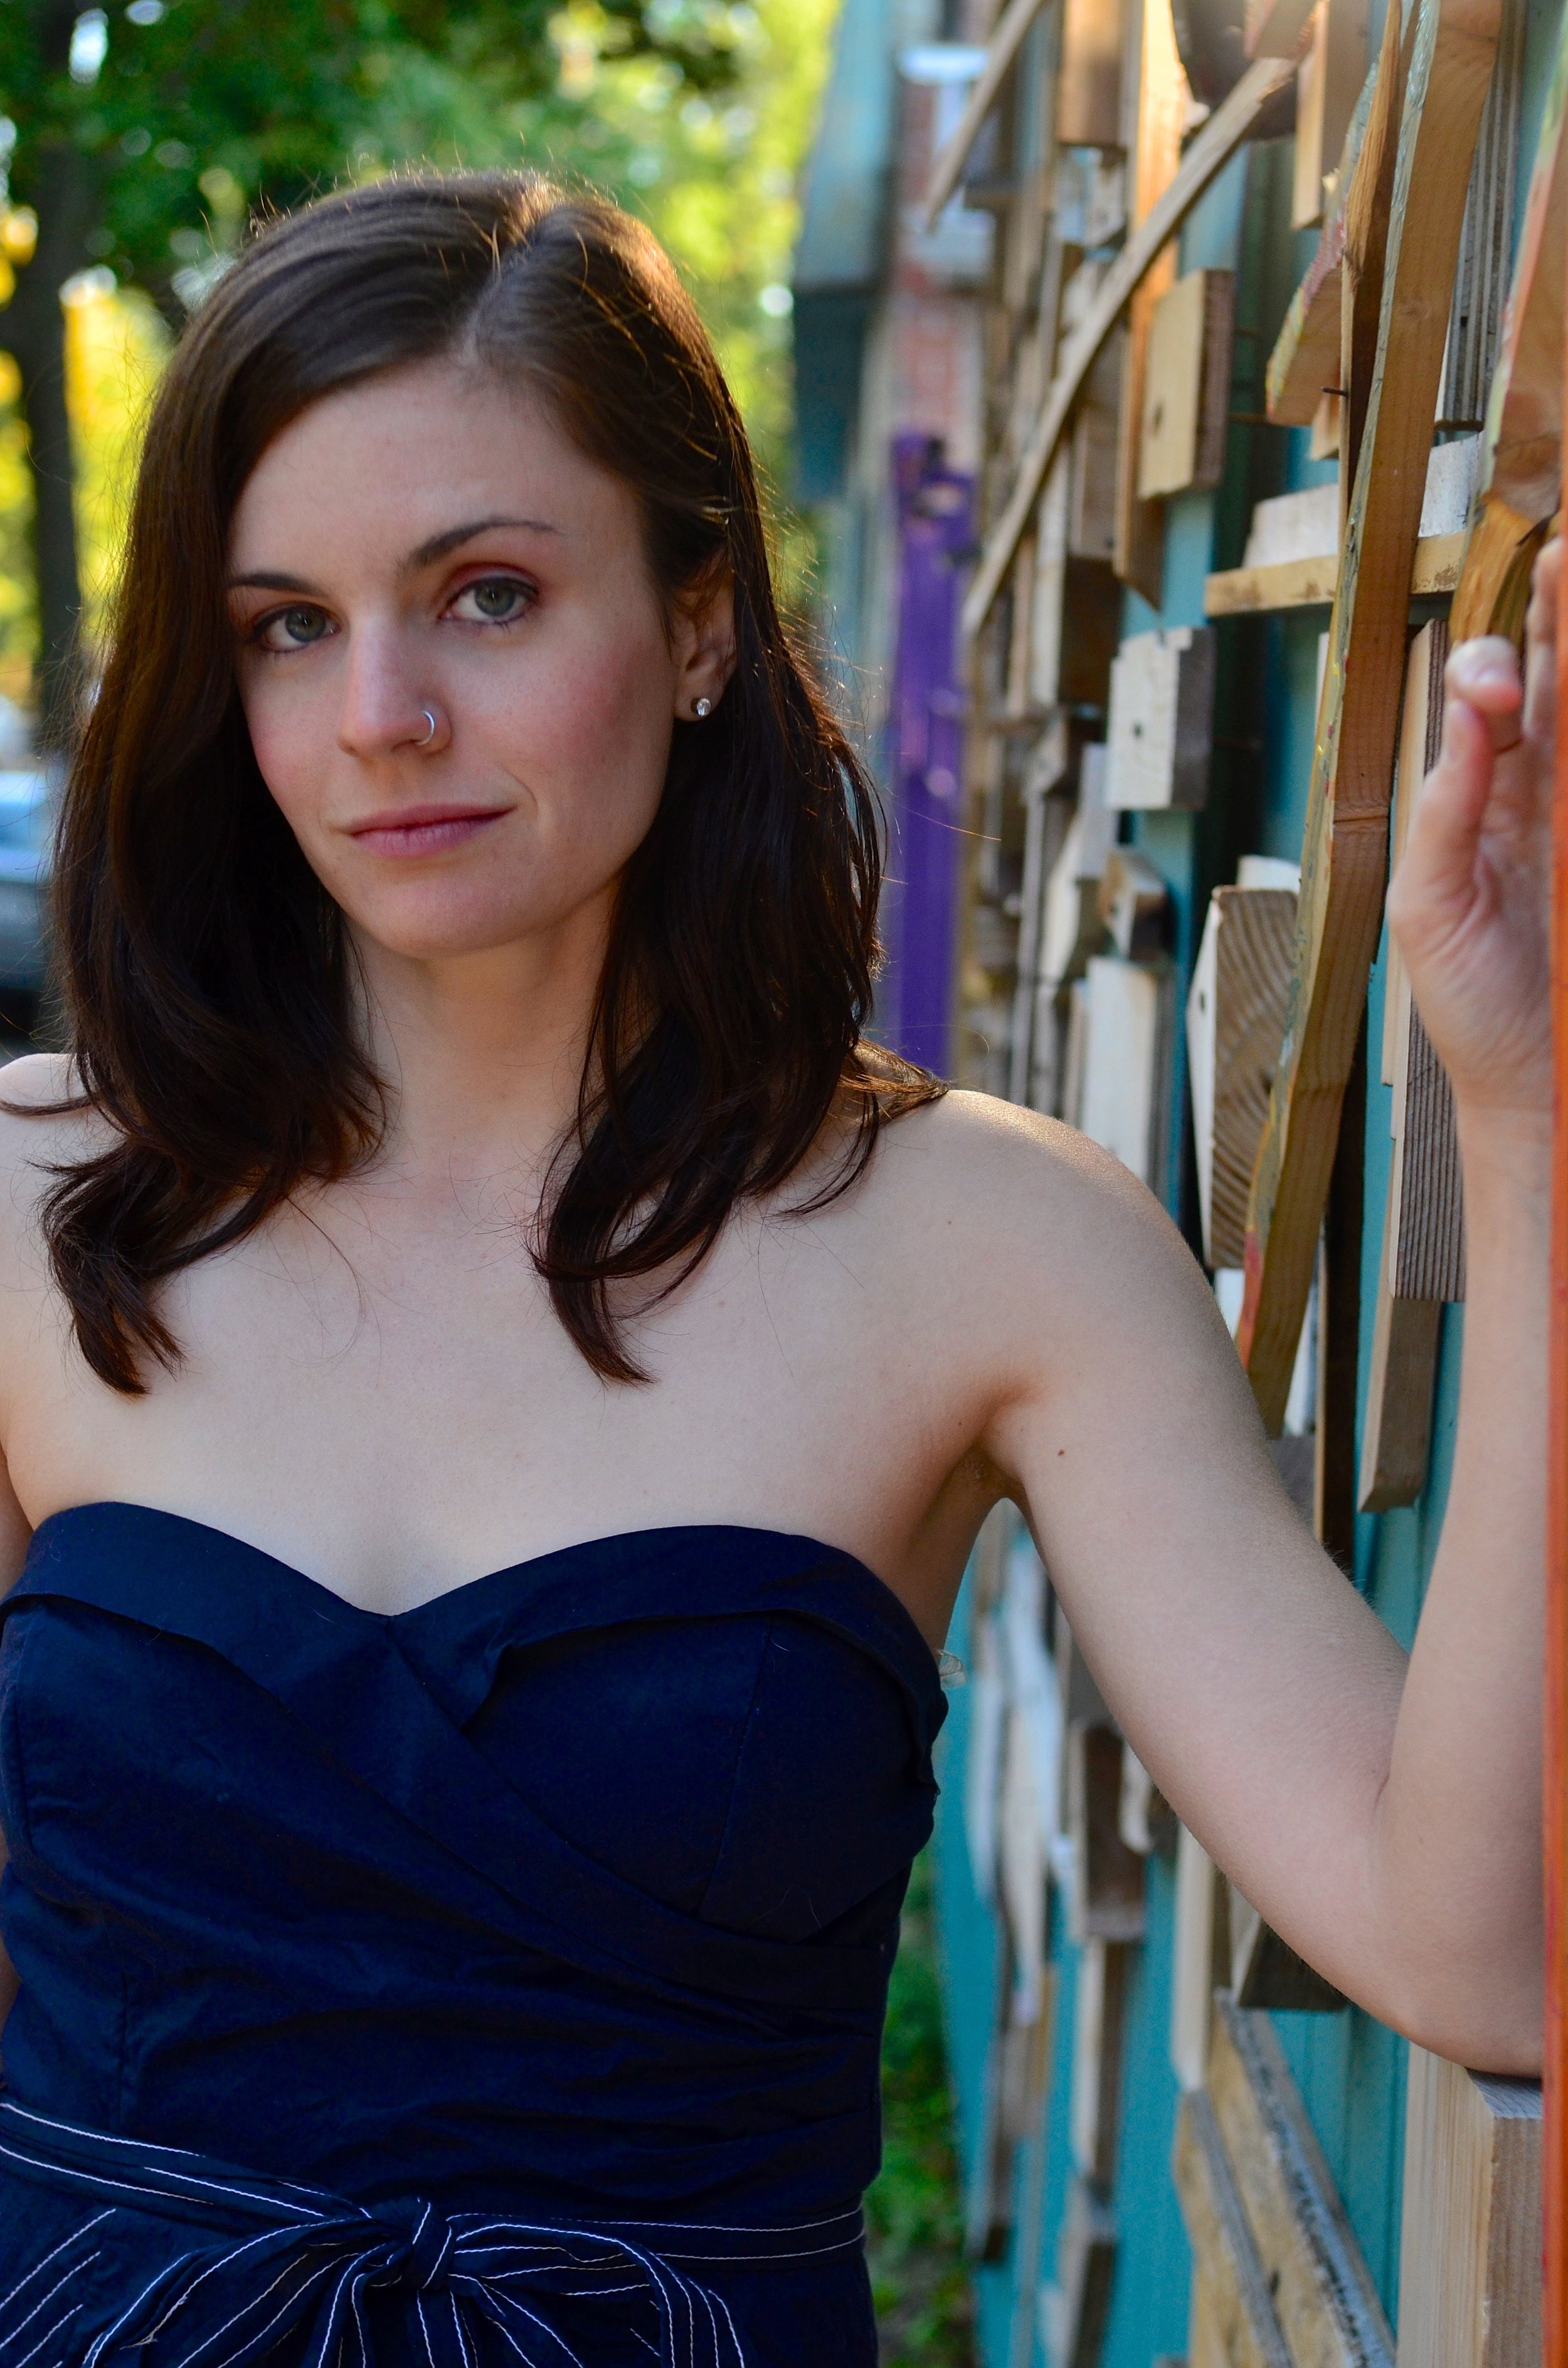 Photo by Jeff White:  A photo of Christine. She is fair-skinned and her skin has a pink hue. Her body is lean and she is dressed in a navy blue strapless dress. She is in her mid 20's in this photo. Her hand is propped on a colorful wall she leans against, a half smirk on her face as she gazes directly at the camera. Her brown hair falls past her shoulders and she has a nose ring and arched eyebrows. Behind her a residential street shines green through the summer leaves.